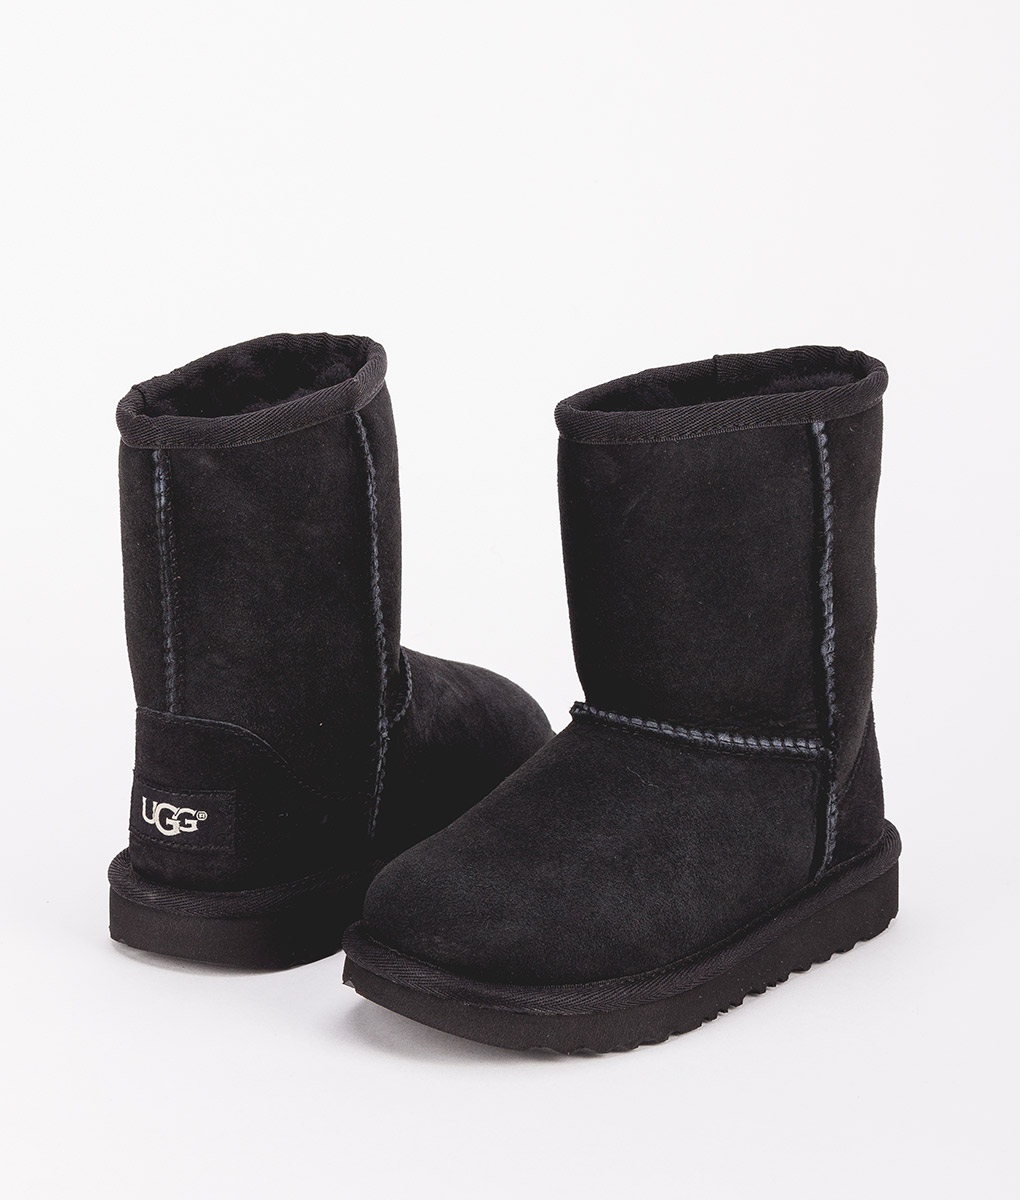 UGG Kids Ankle Boots 1017703T CLASSIC II, Black